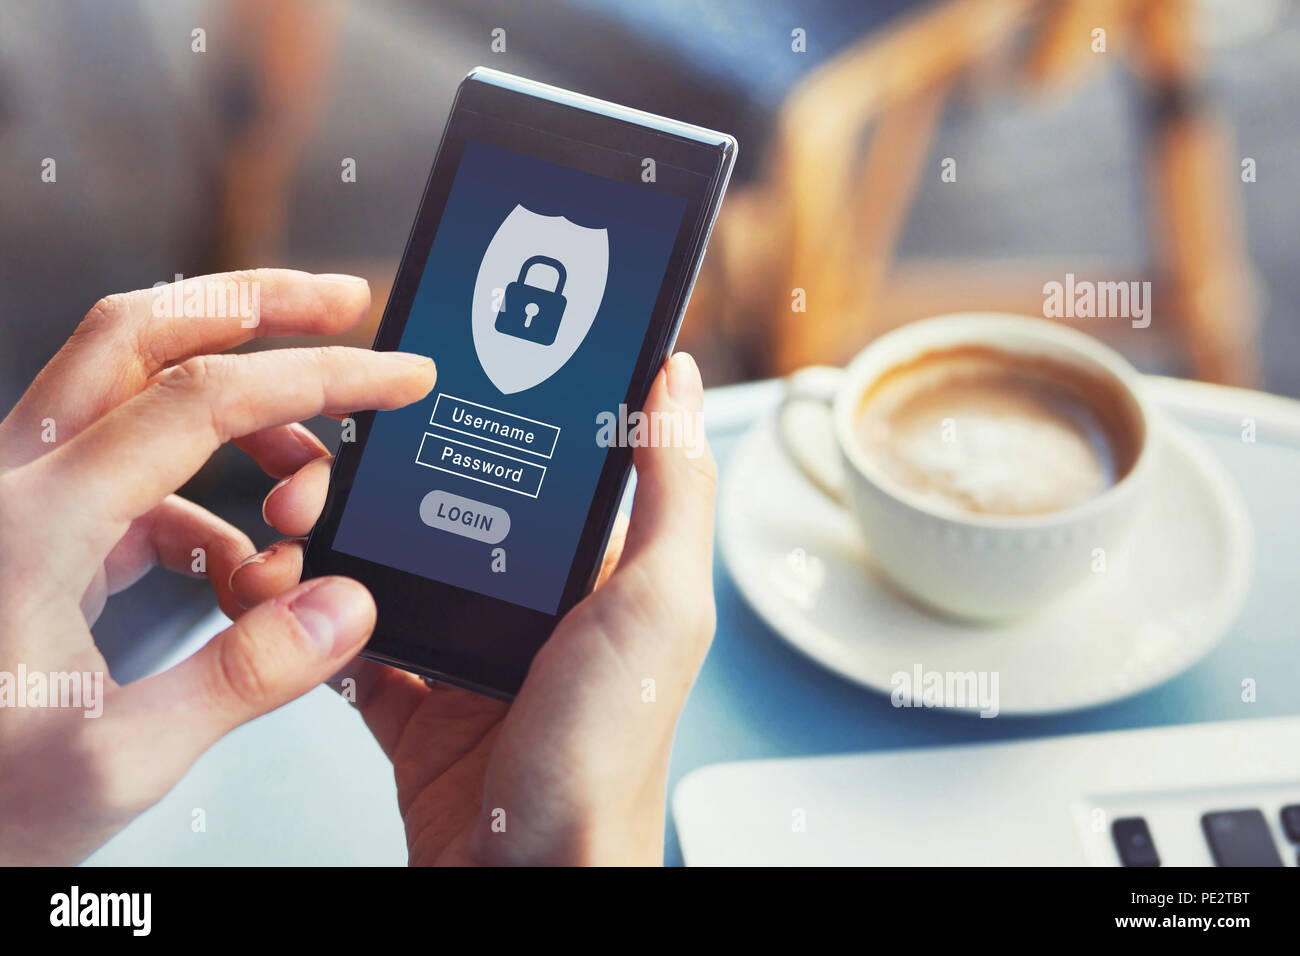 login to mobile app, cybersecurity, private access with username and password to personal data, concept on screen of smartphone - Stock Image